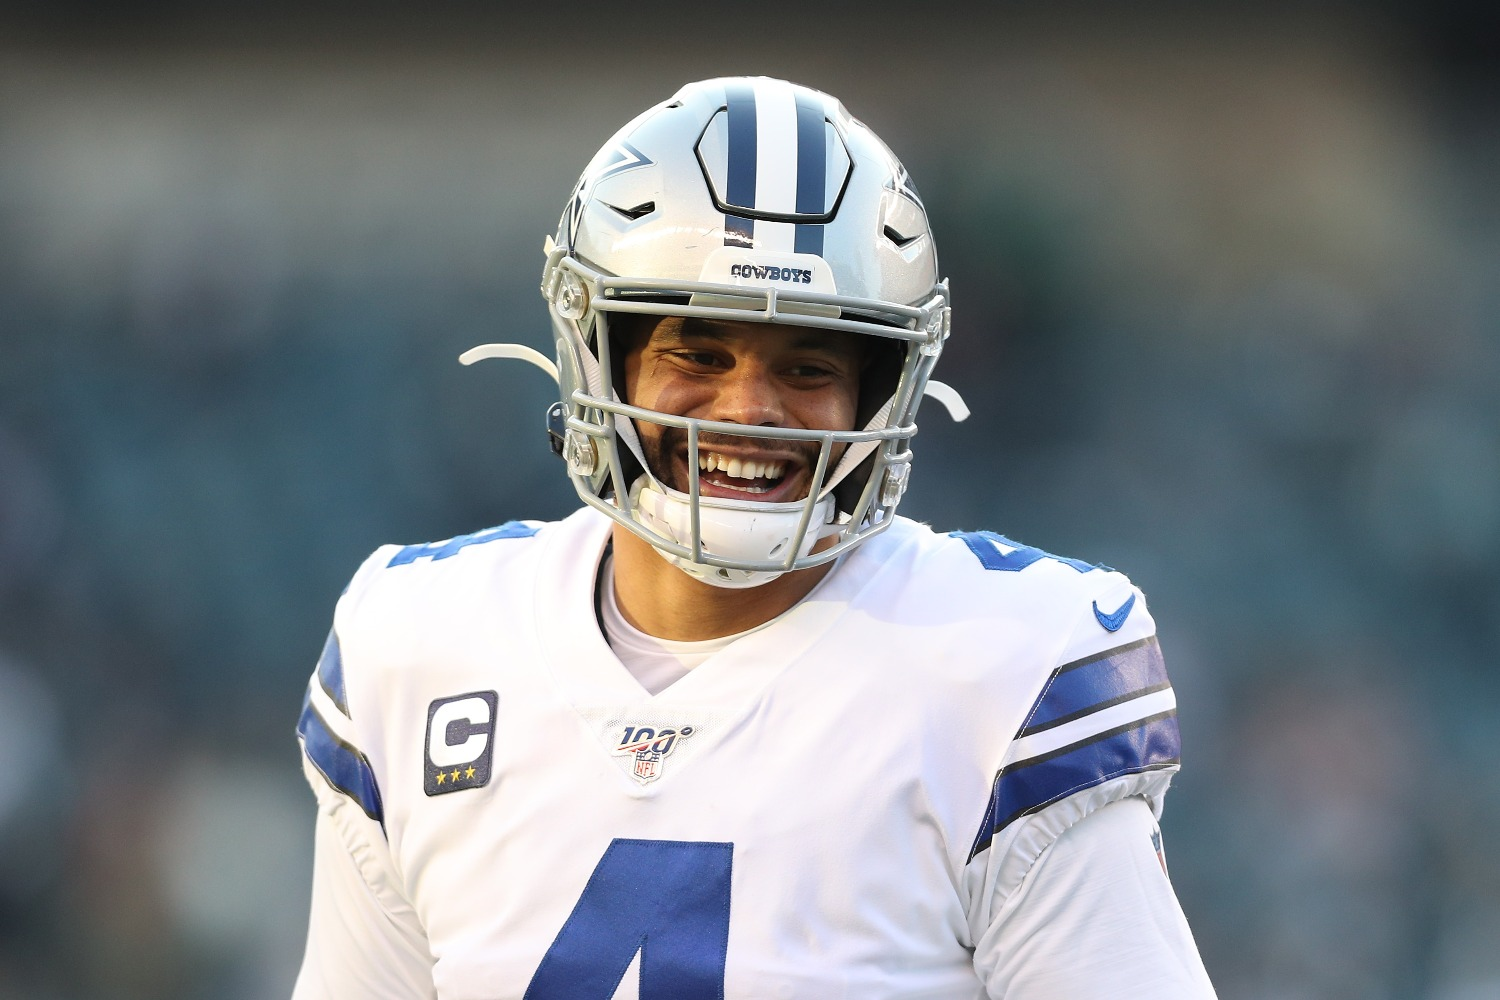 Dak Prescott sent a scary message about Aldon Smith, who should be the Cowboys' biggest x-factor this season.